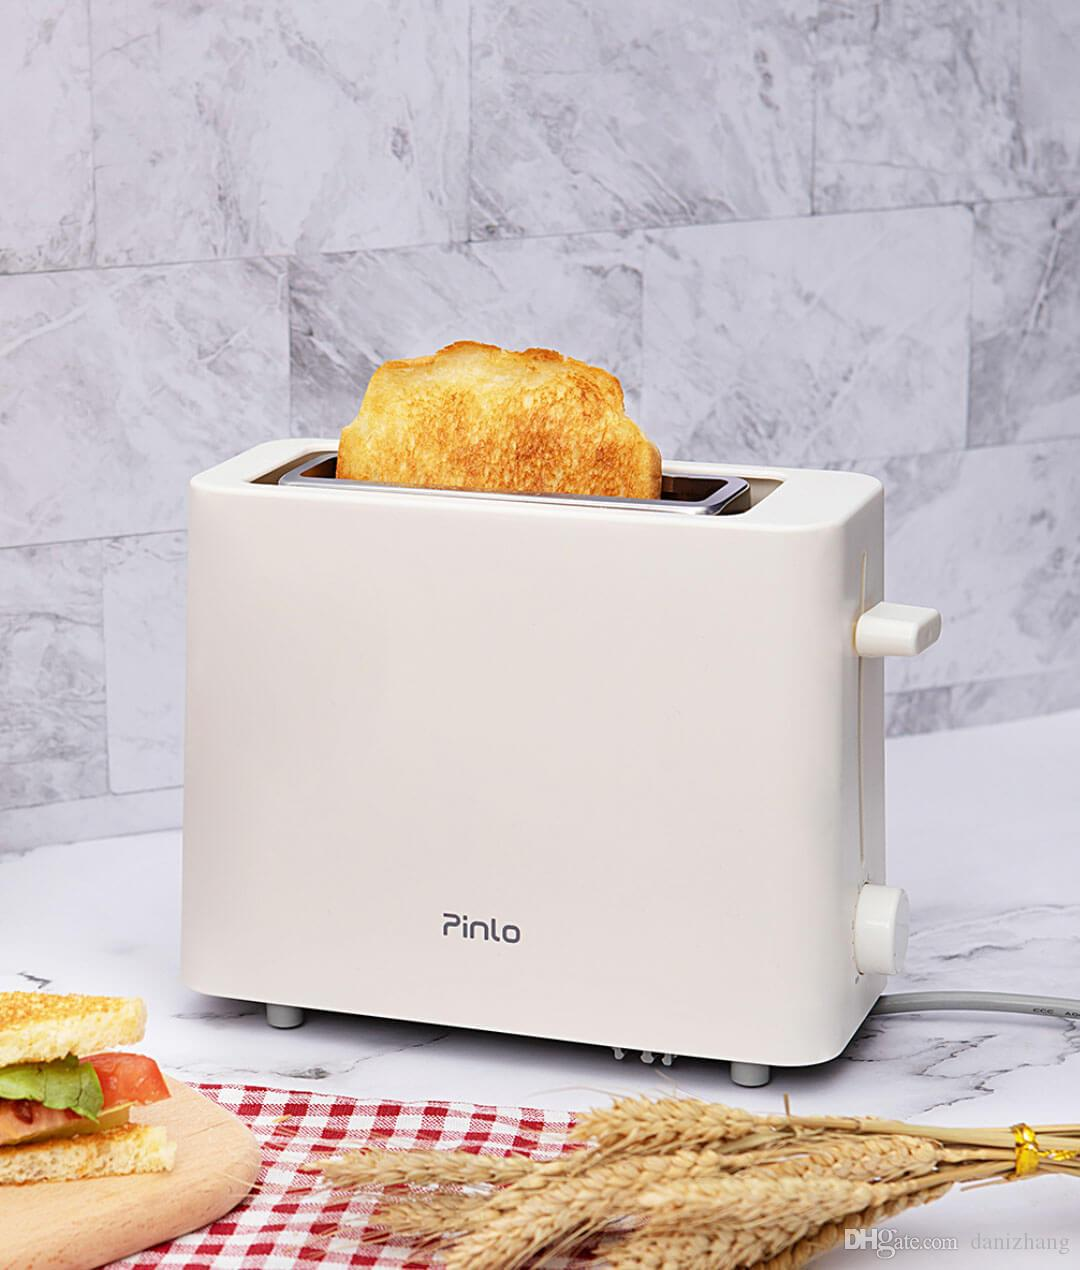 220V 500w White Multi-function toaster Bread machine maker PP material 6 gears time adjustment Oil-free baking 219x278x94mm